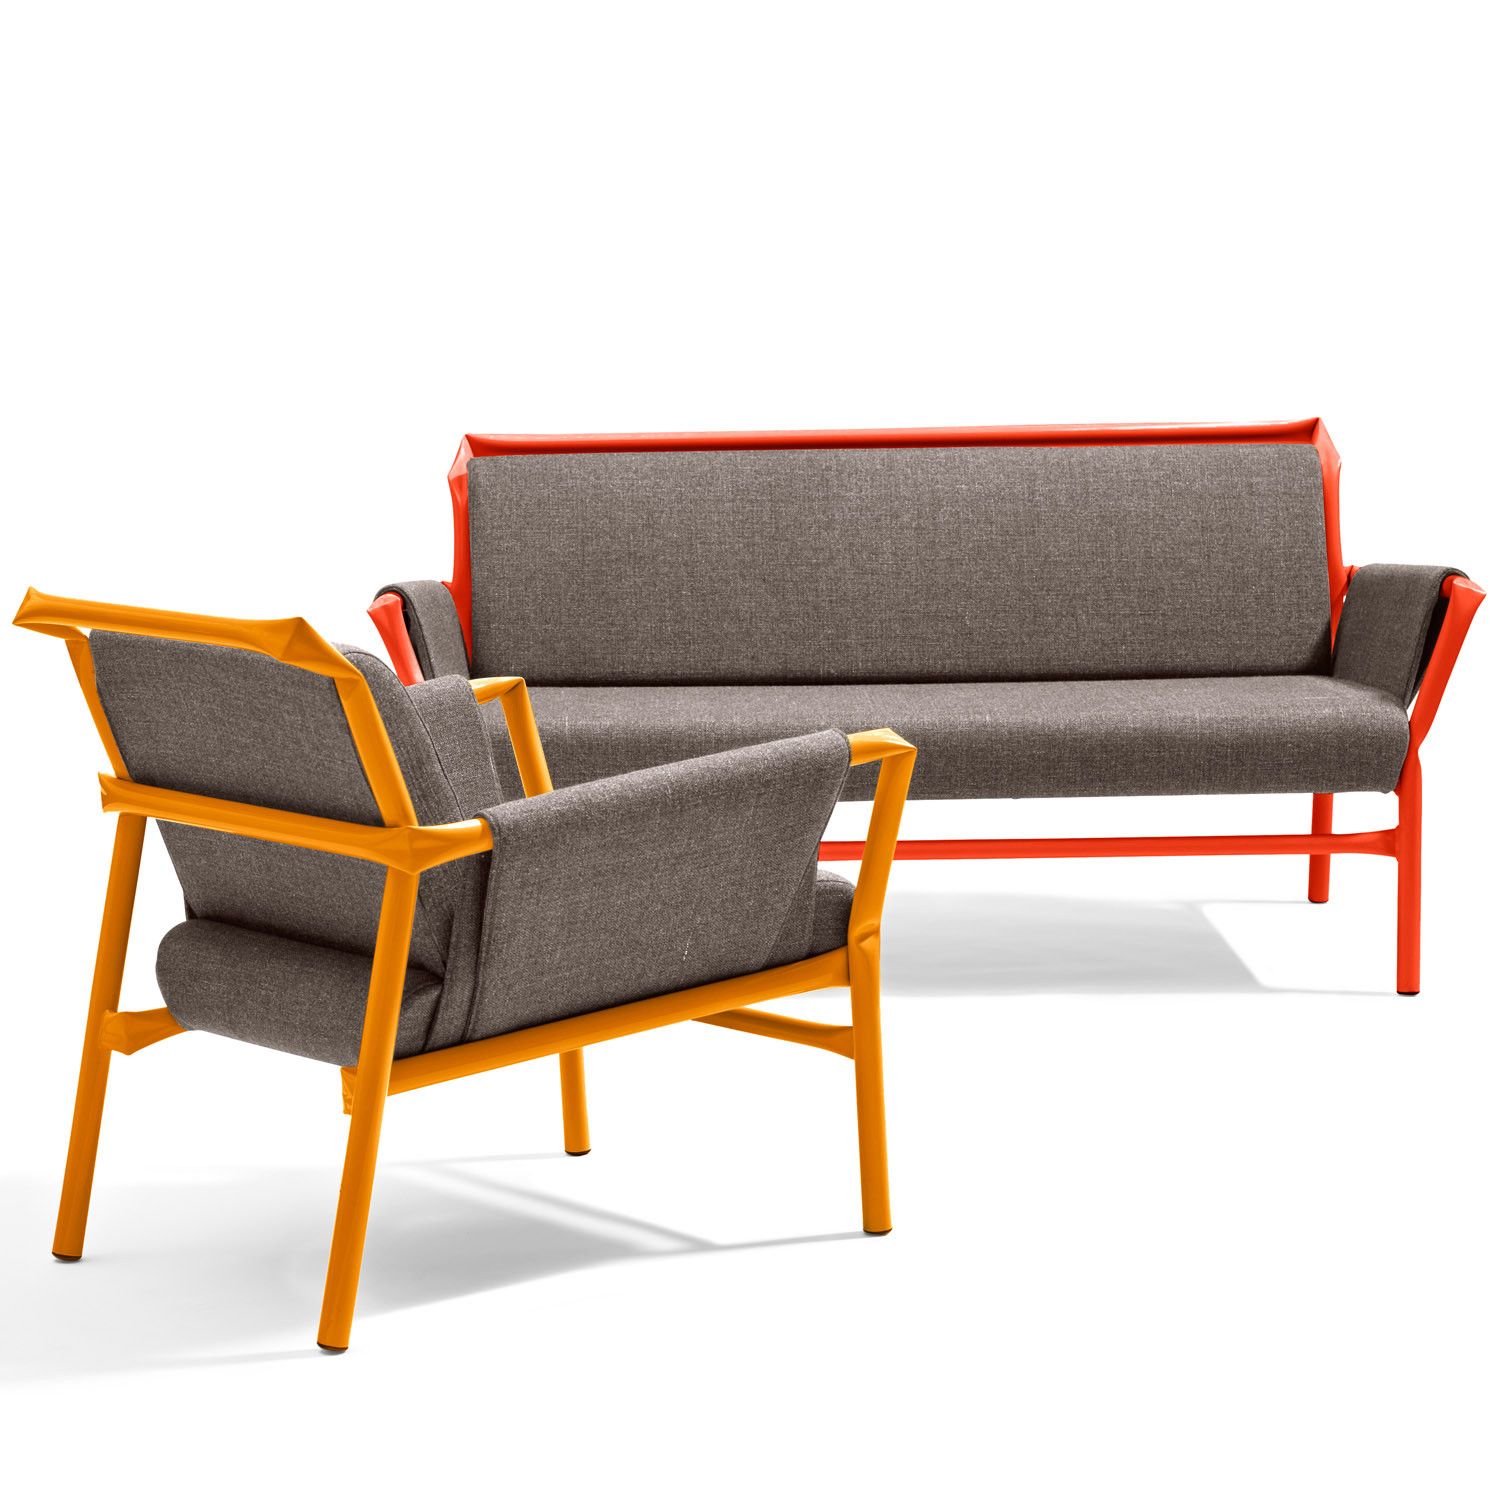 Superkink S27 Sofa and S26 Armchair